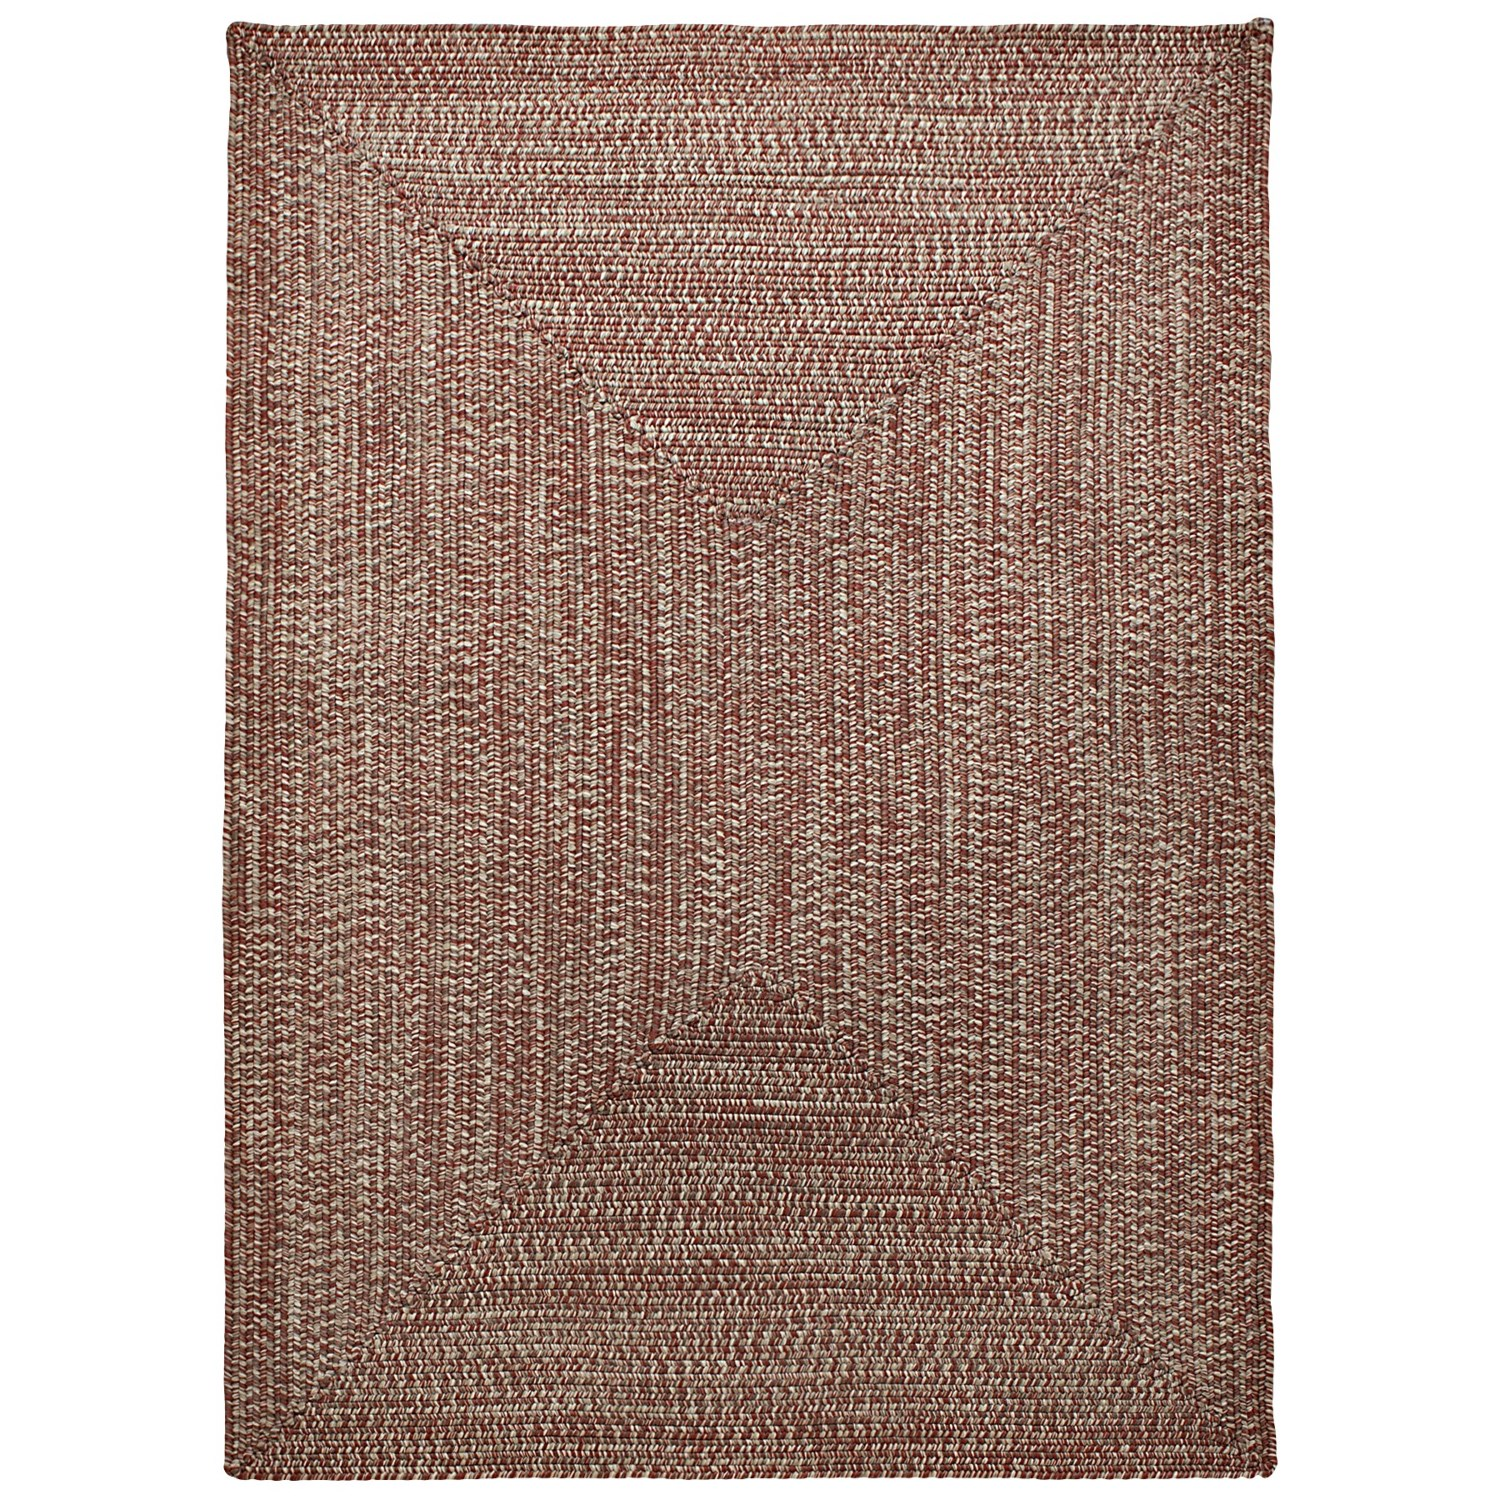 Colonial Mills Braided Indoor Outdoor Area Rug 5x7